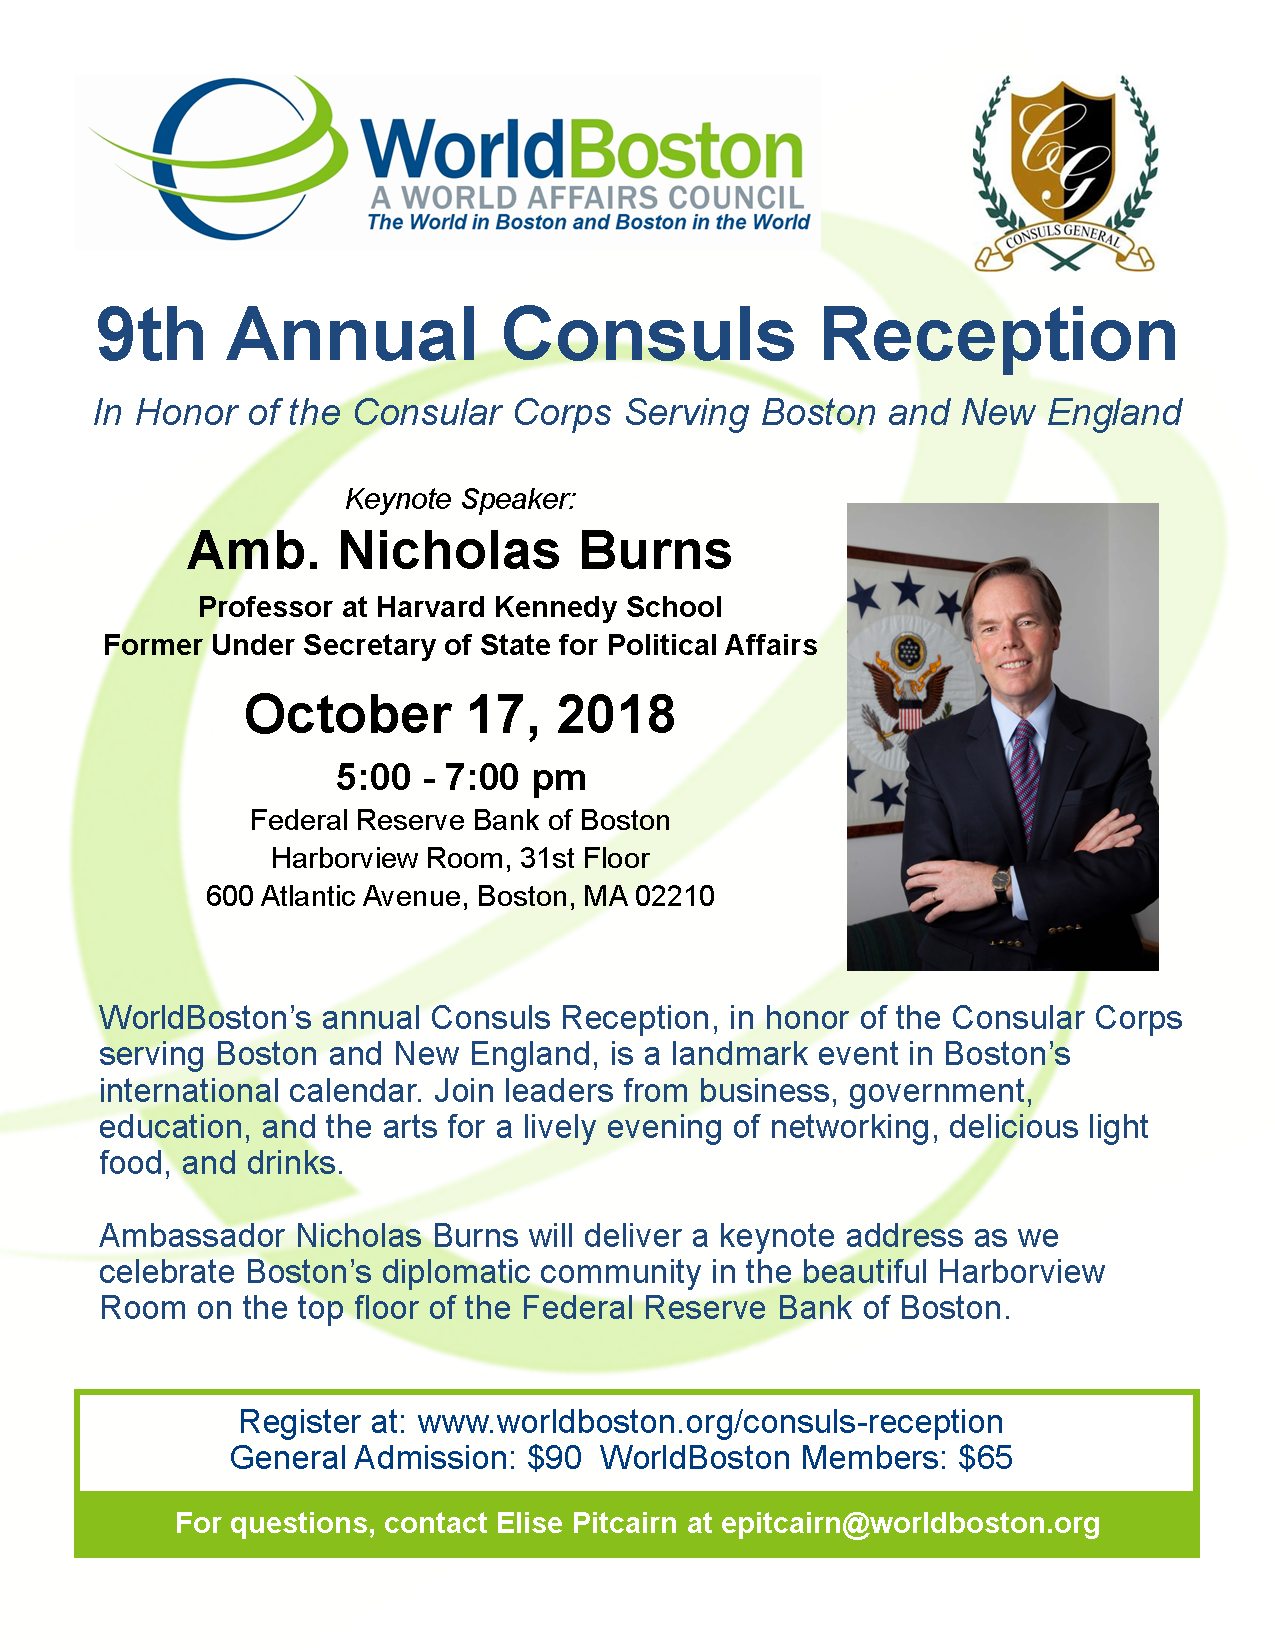 9th Annual Consuls Reception Flyer p1 website.png